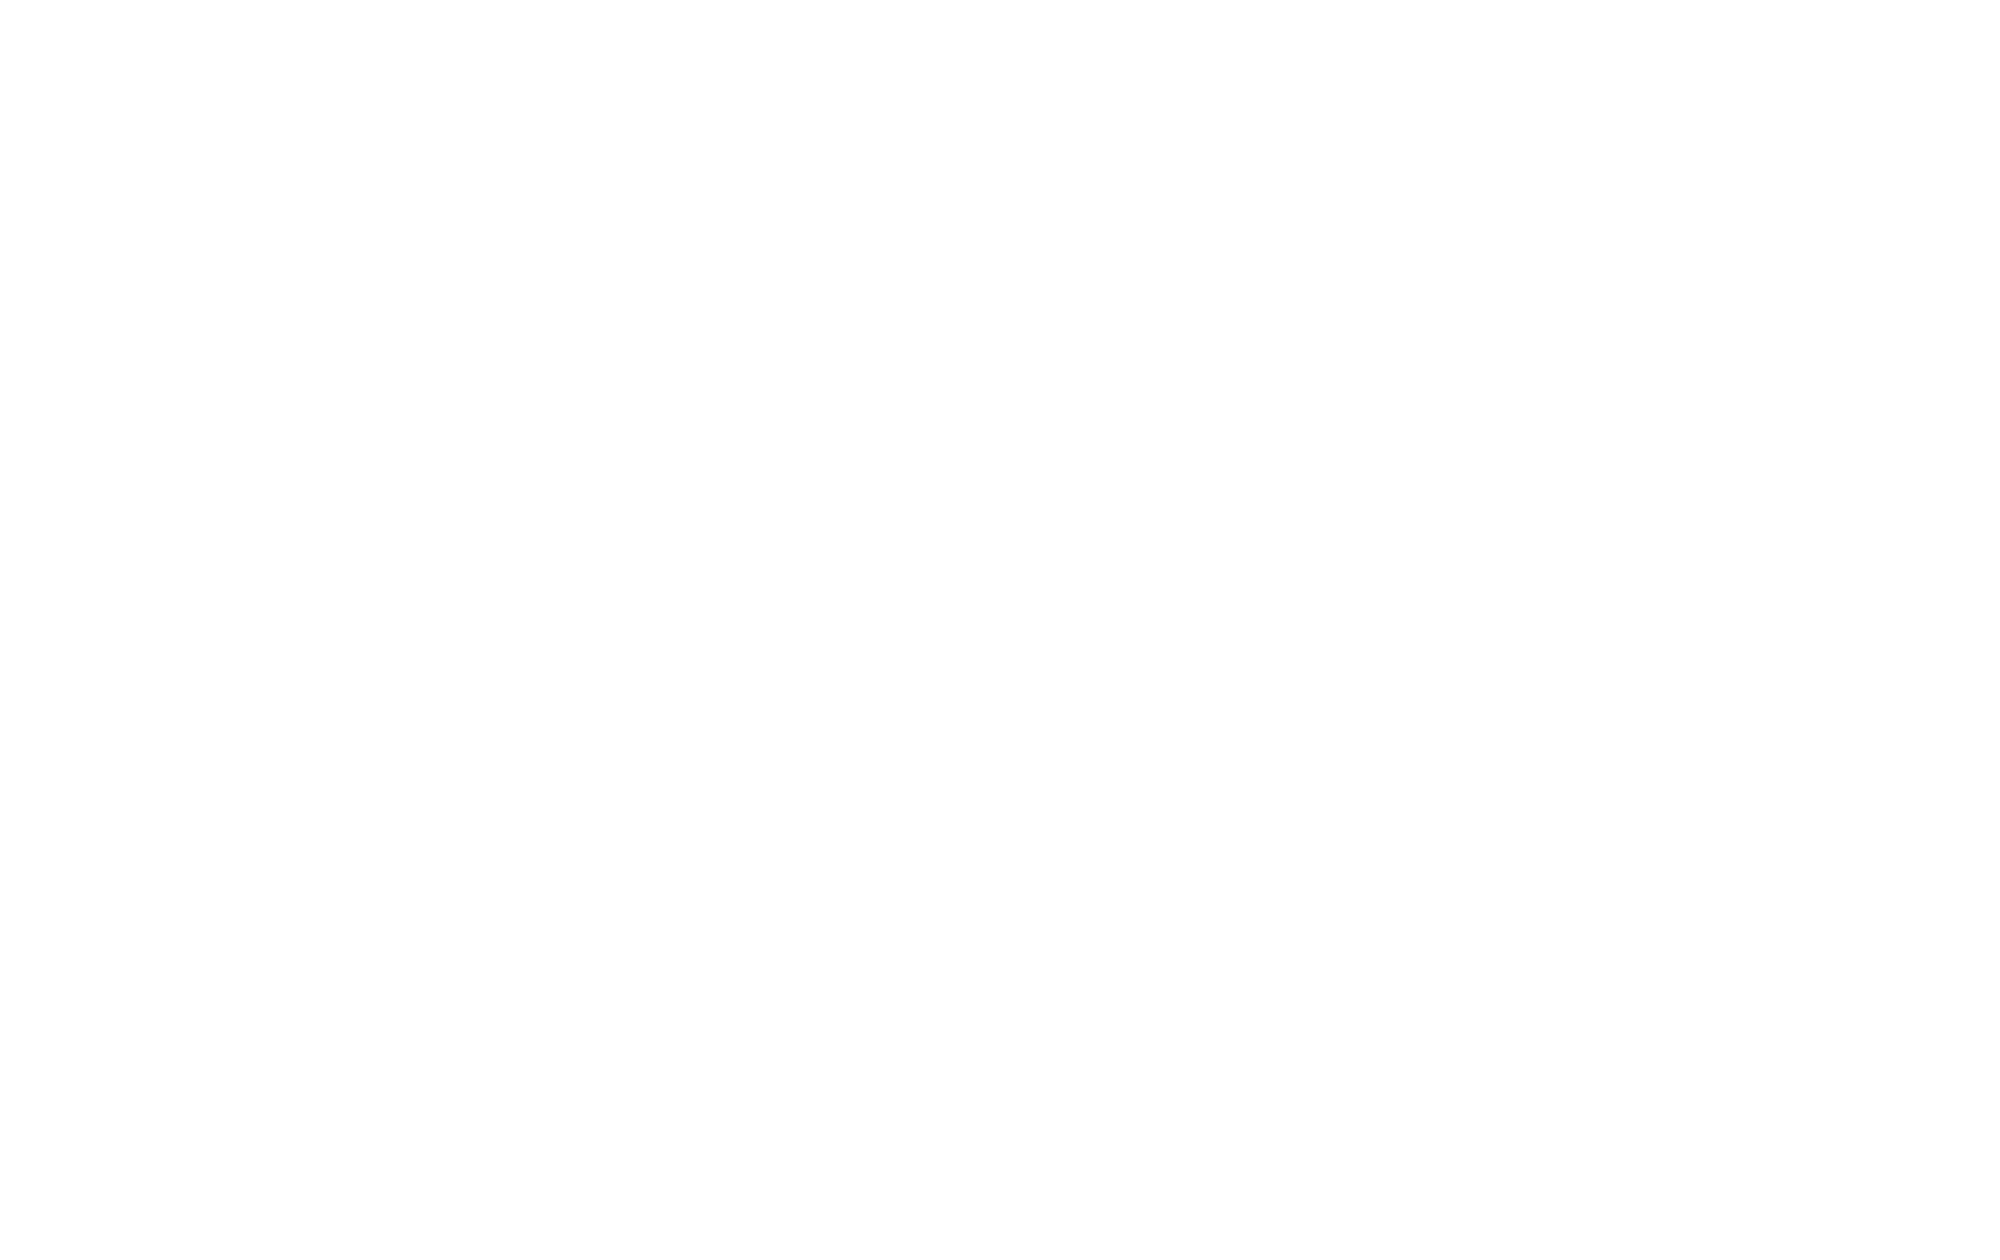 Have a Look at Today's Champions League Betting Offers